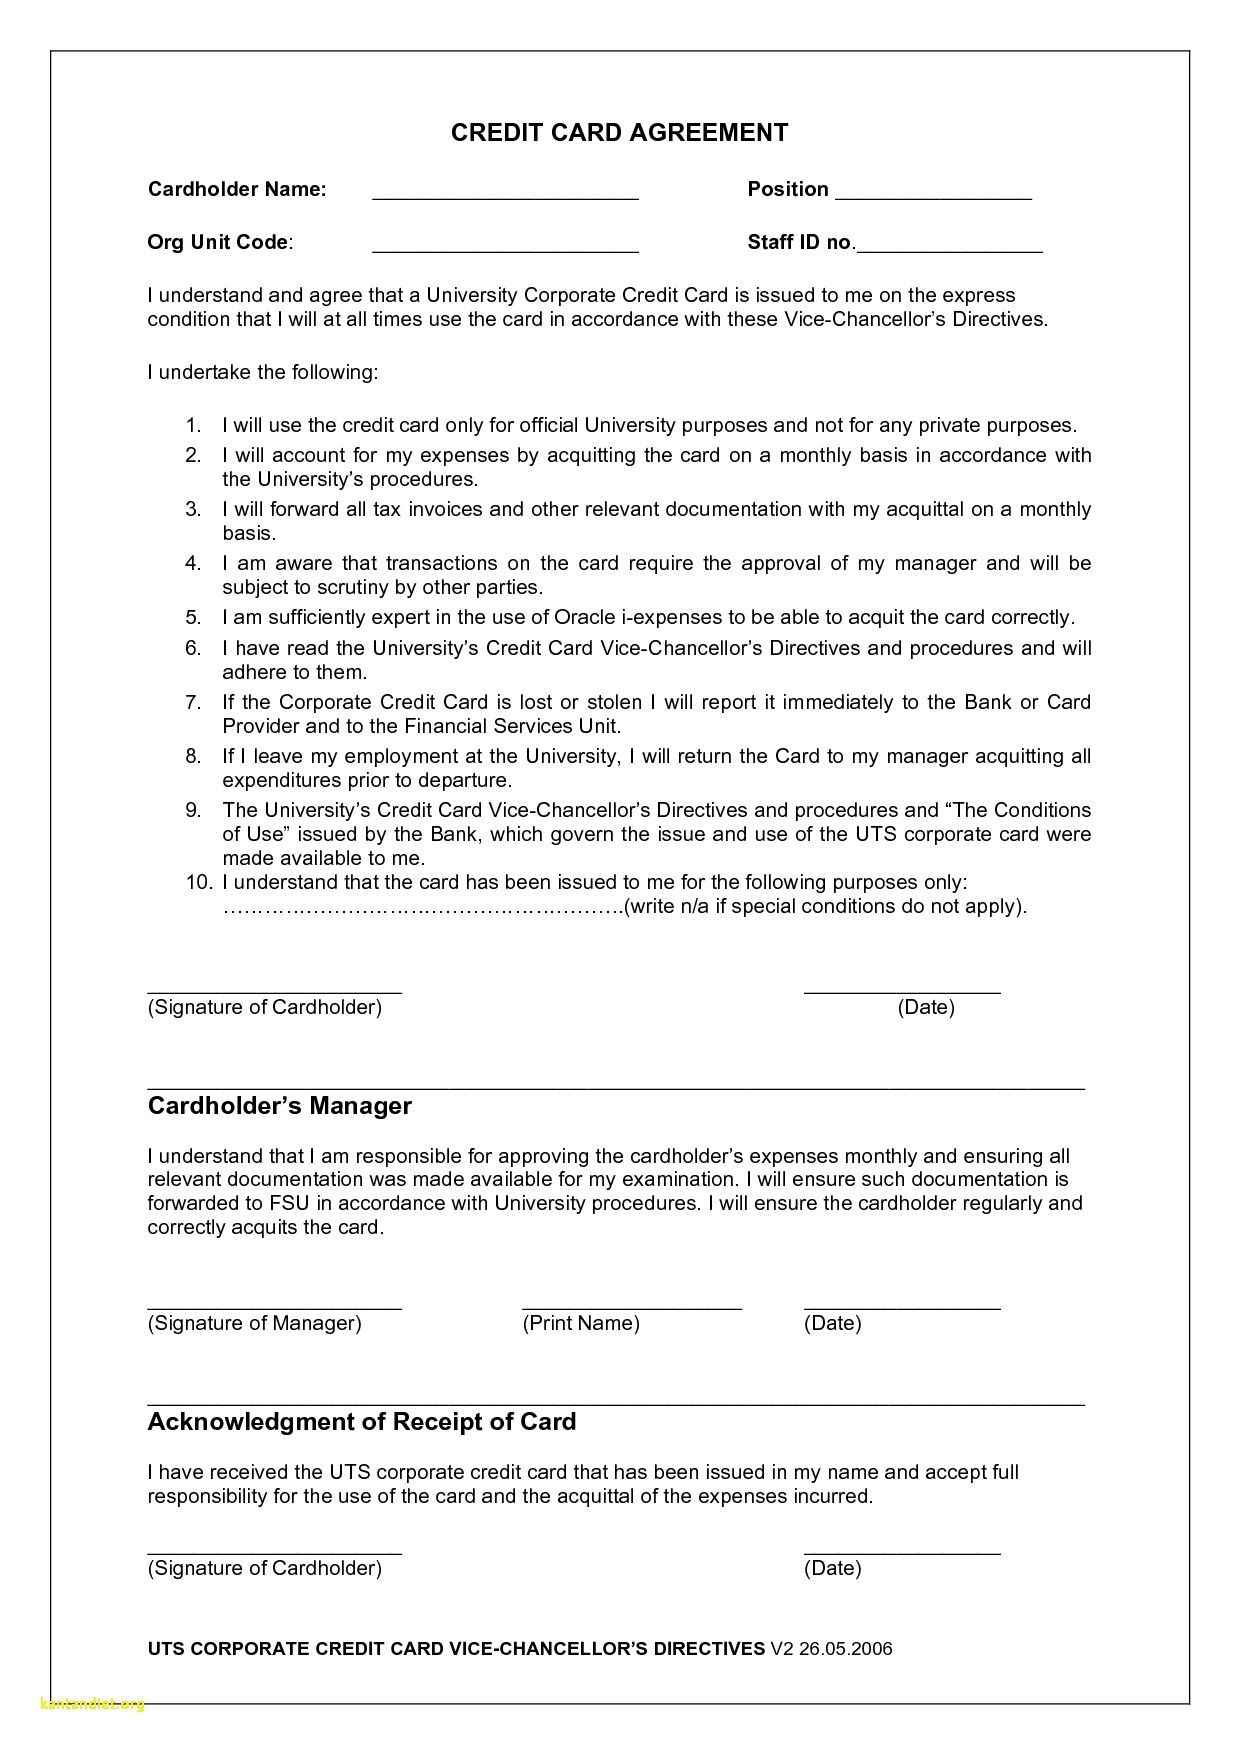 Employee Credit Card Agreement Business Template With Regard To Acquittal Report Templat Corporate Credit Card Business Template Credit Card Application Form